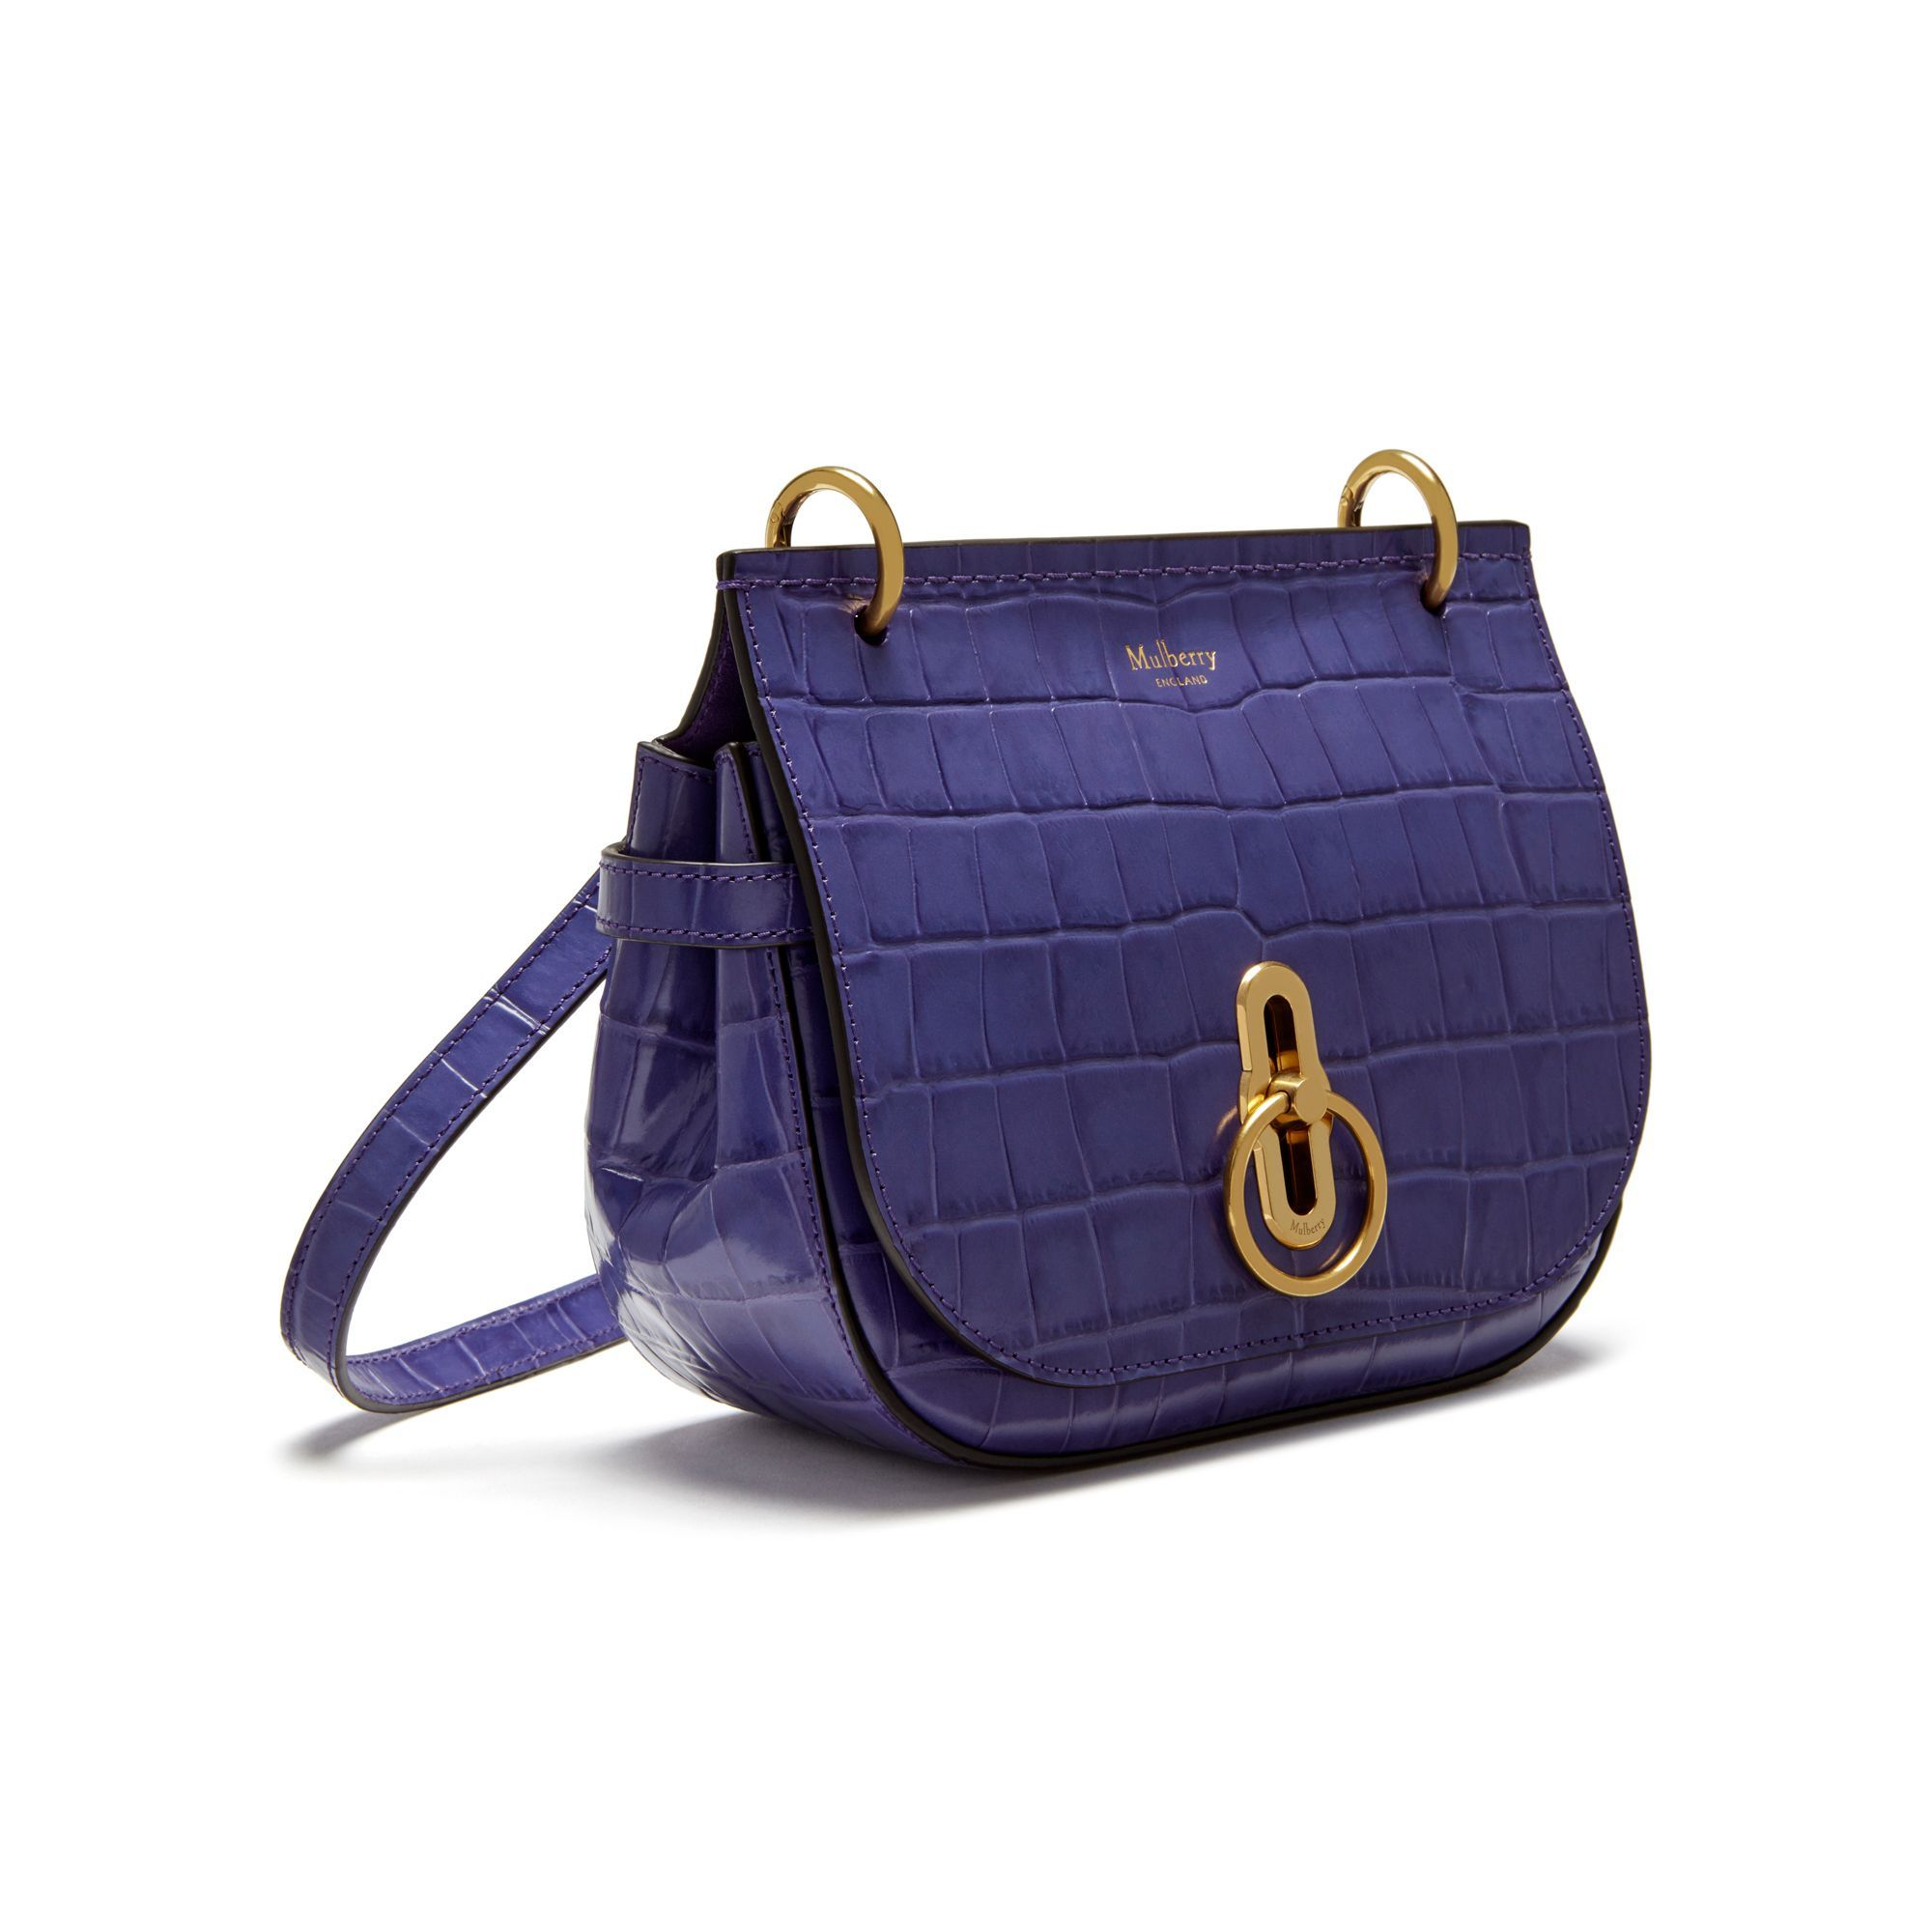 Shop the Small Amberley Satchel in Dark Amethyst Croc Print Leather at  Mulberry.com. 2ae1fd5022